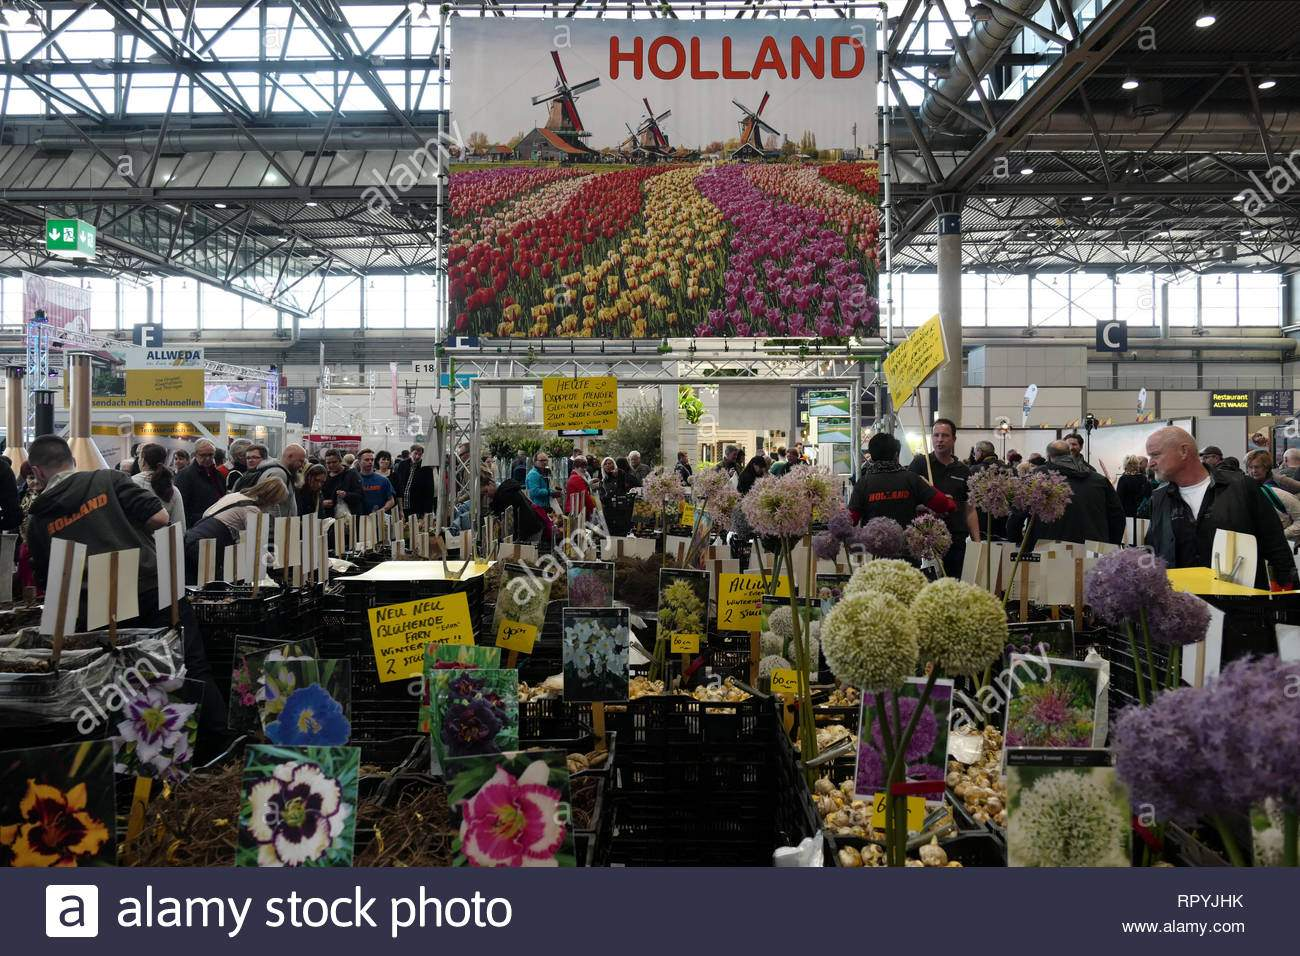 leipzig germany 23rd feb 2019 flower bulbs from holland are offered for sale at the haus garten freizeit trade fair at the leipziger messe parallel to the haus garten freizeit the fair mitteldeutsche handwerksmesse 2019 takes place from 2302 credit peter endigdpaalamy live news image